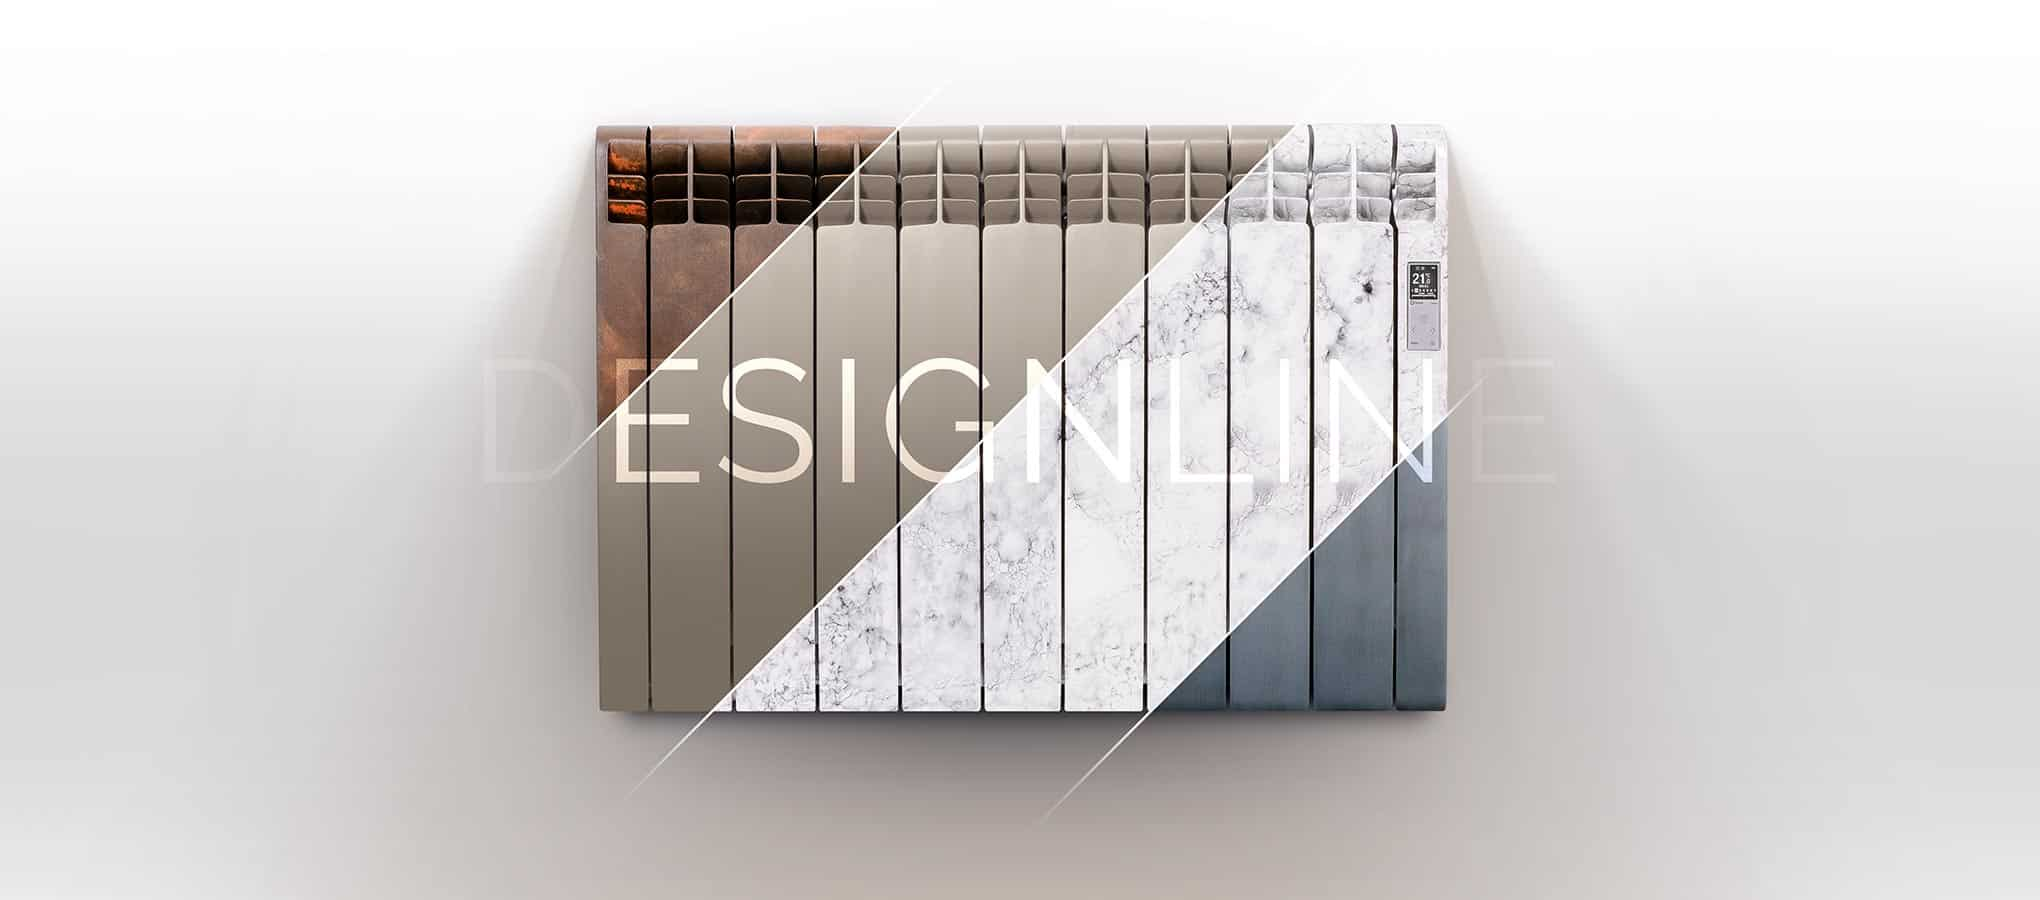 Rointe DESIGNLINE radiator mash up featuring brown oxide, pearl beige, marble and silver coloured radiators